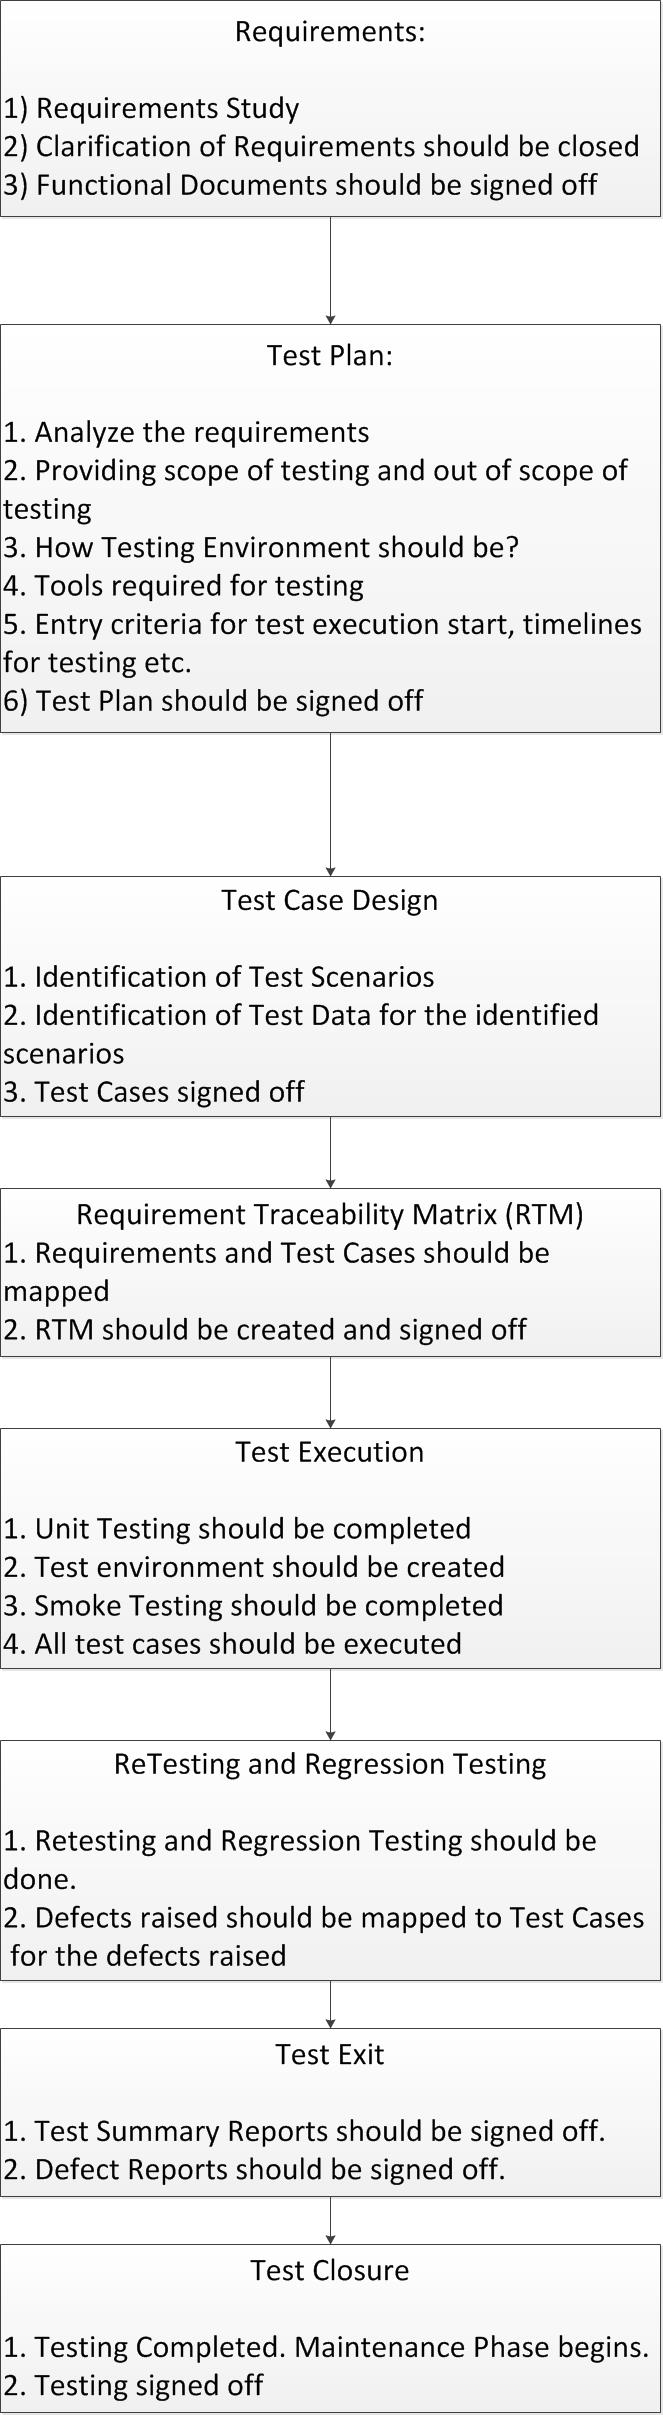 Software Testing Life Cycle (STLC) Flow Chart: